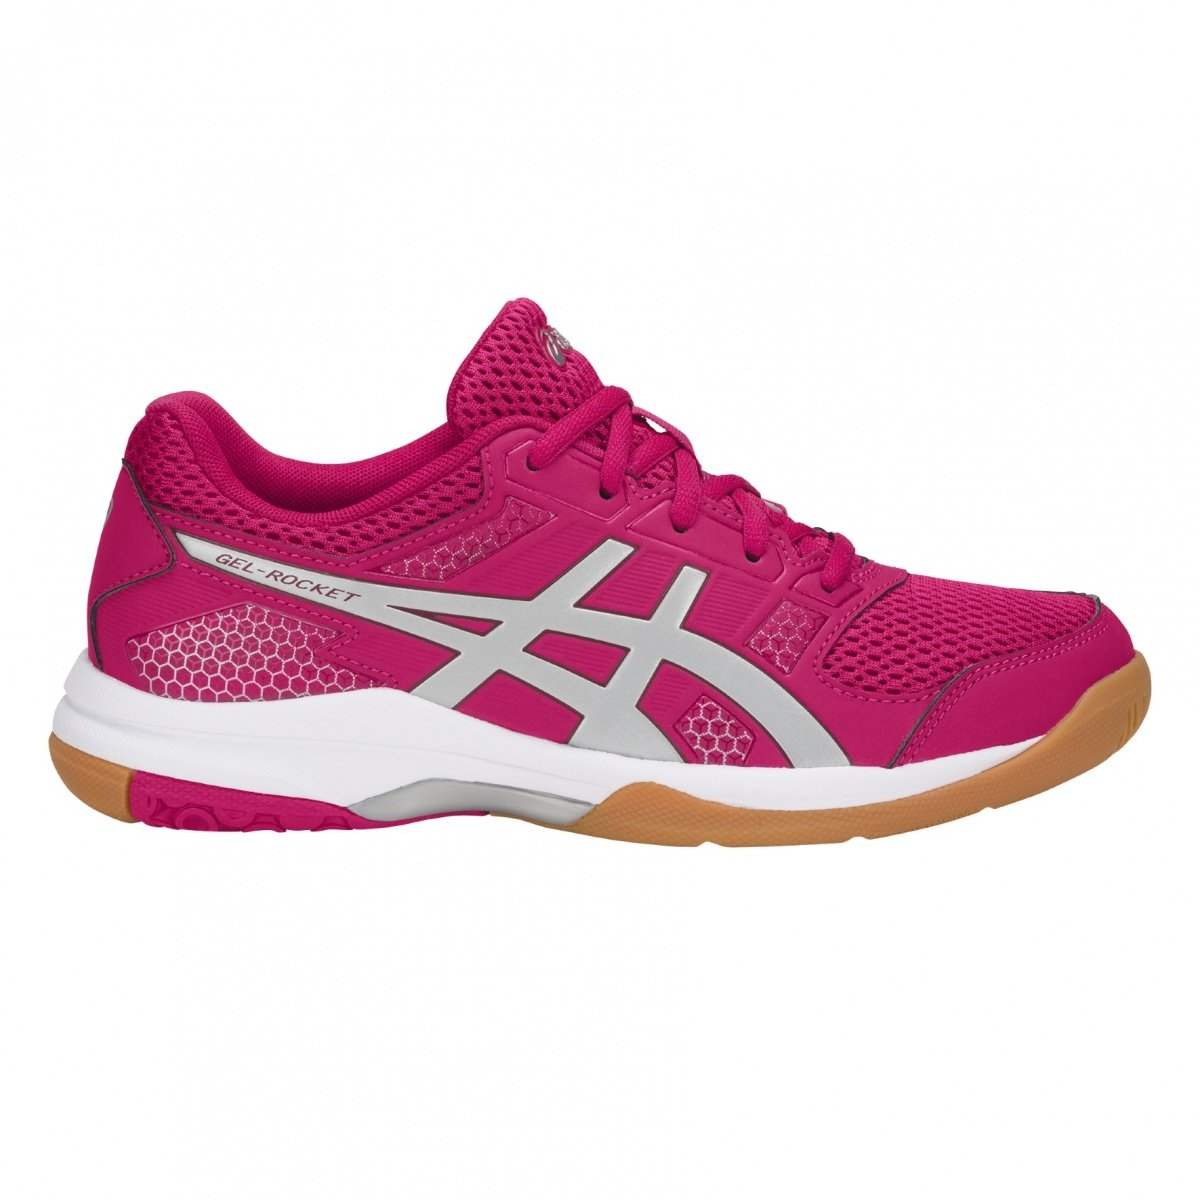 Asics Gel Rocket 8 2018 rose Indoorschuhe Damen jS19N